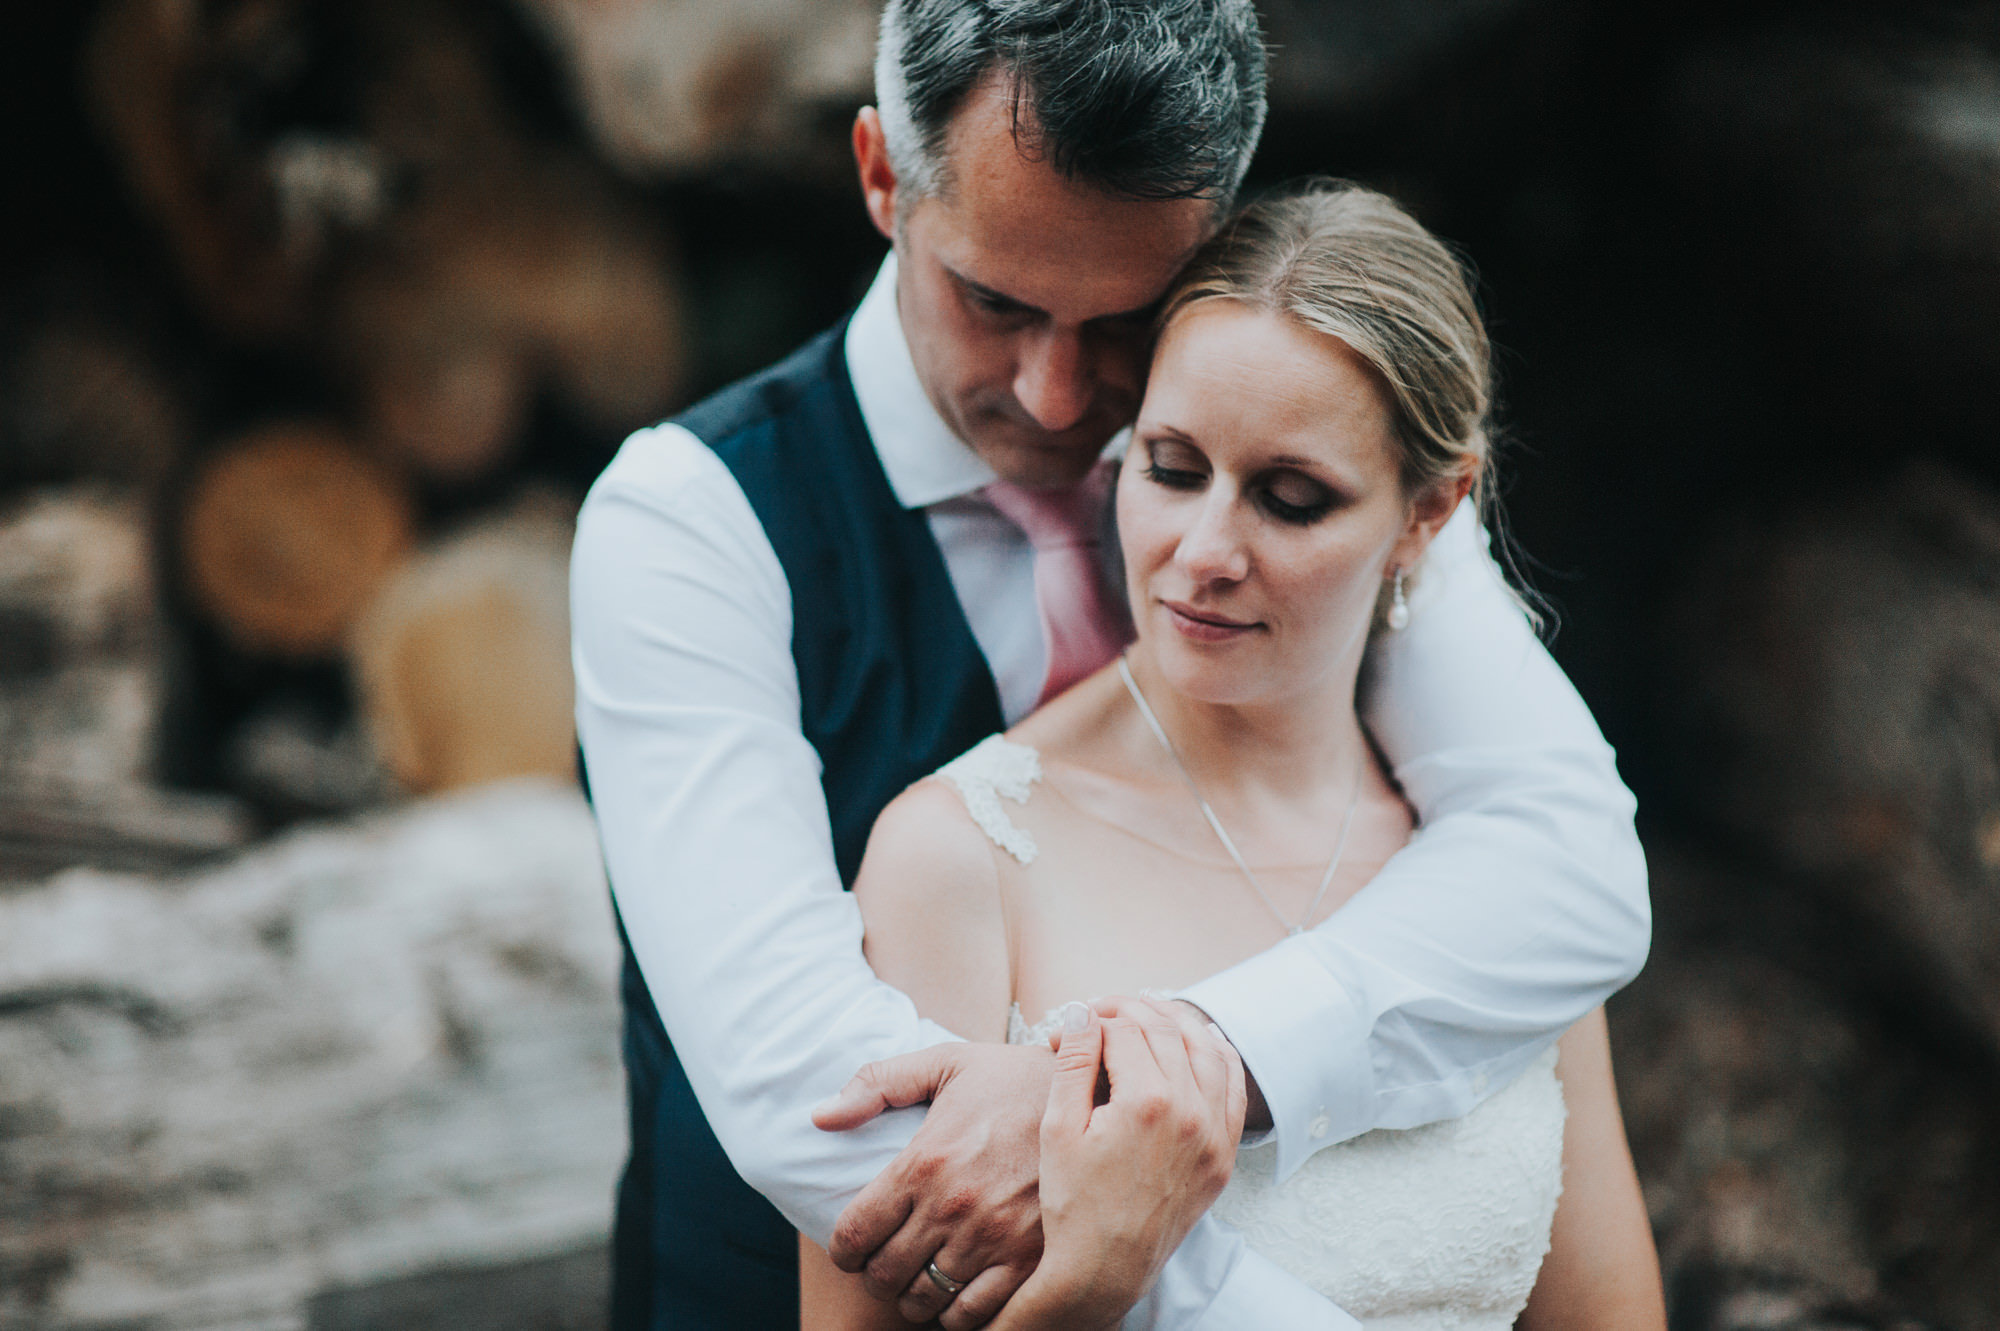 chilled out wedding photographer sussex